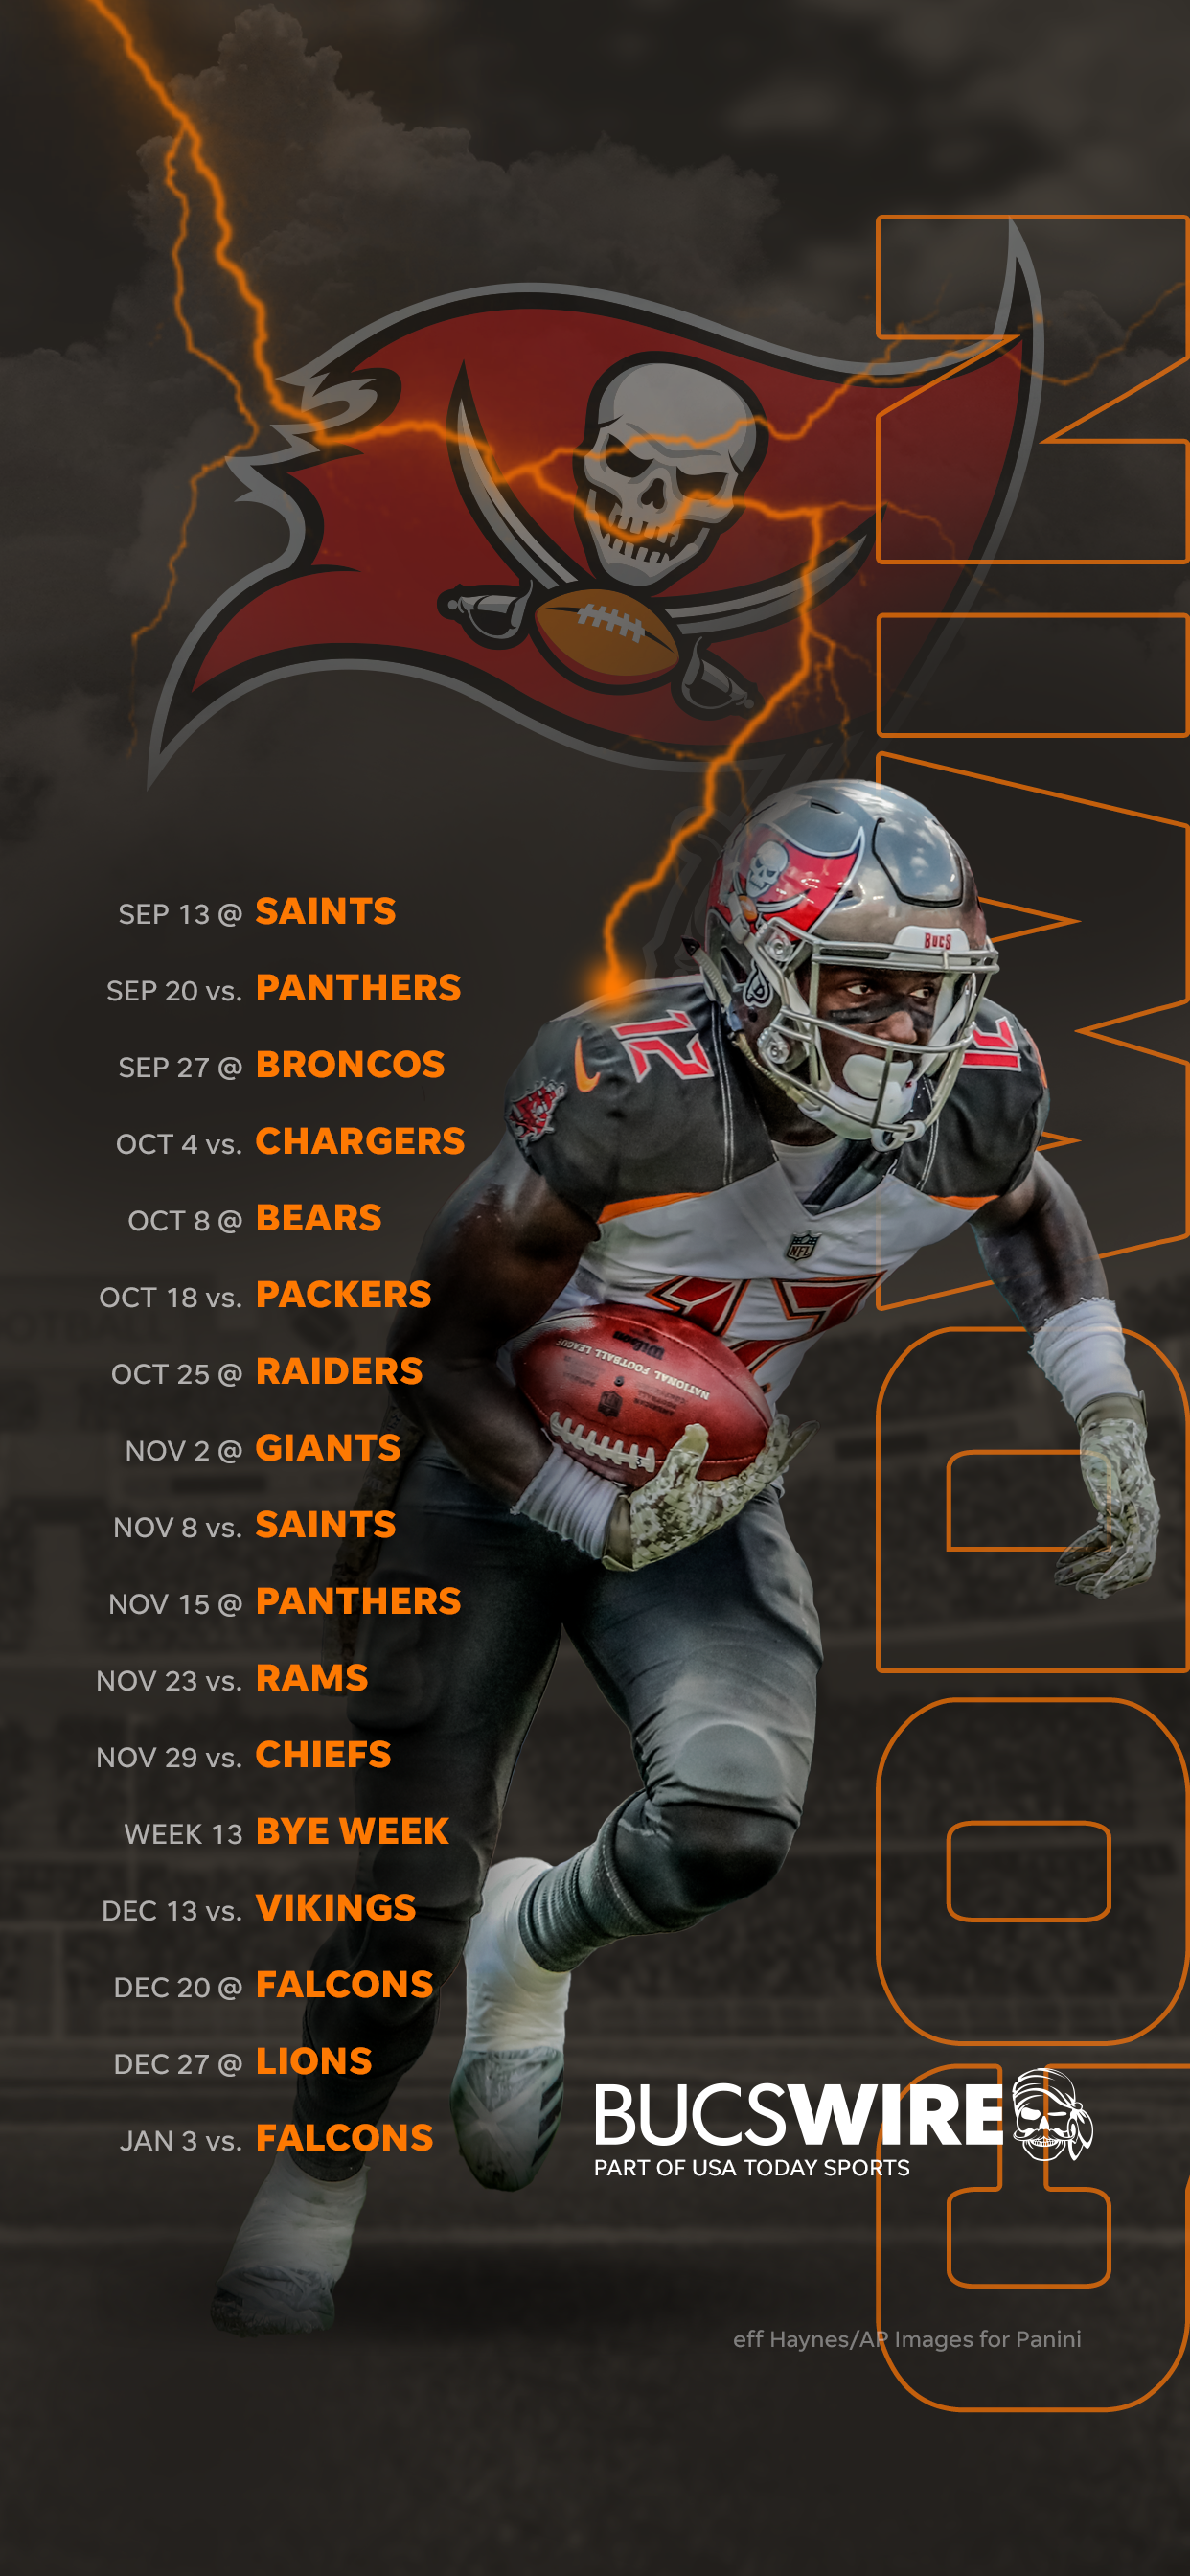 2020 Tampa Bay Buccaneers Schedule